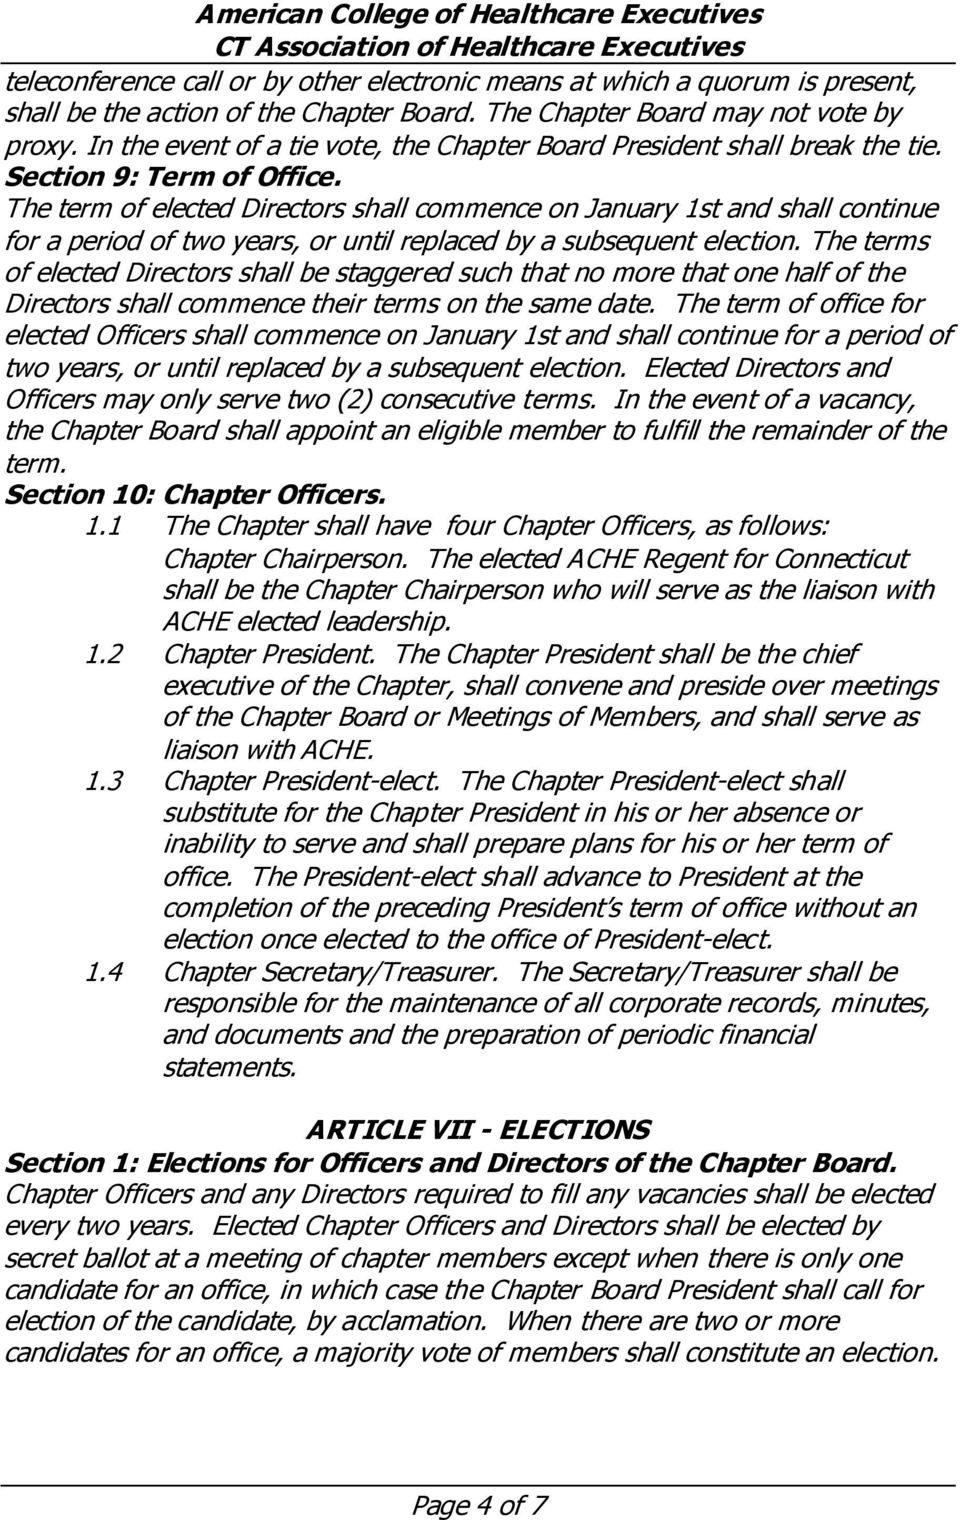 The term of elected Directors shall commence on January 1st and shall continue for a period of two years, or until replaced by a subsequent election.